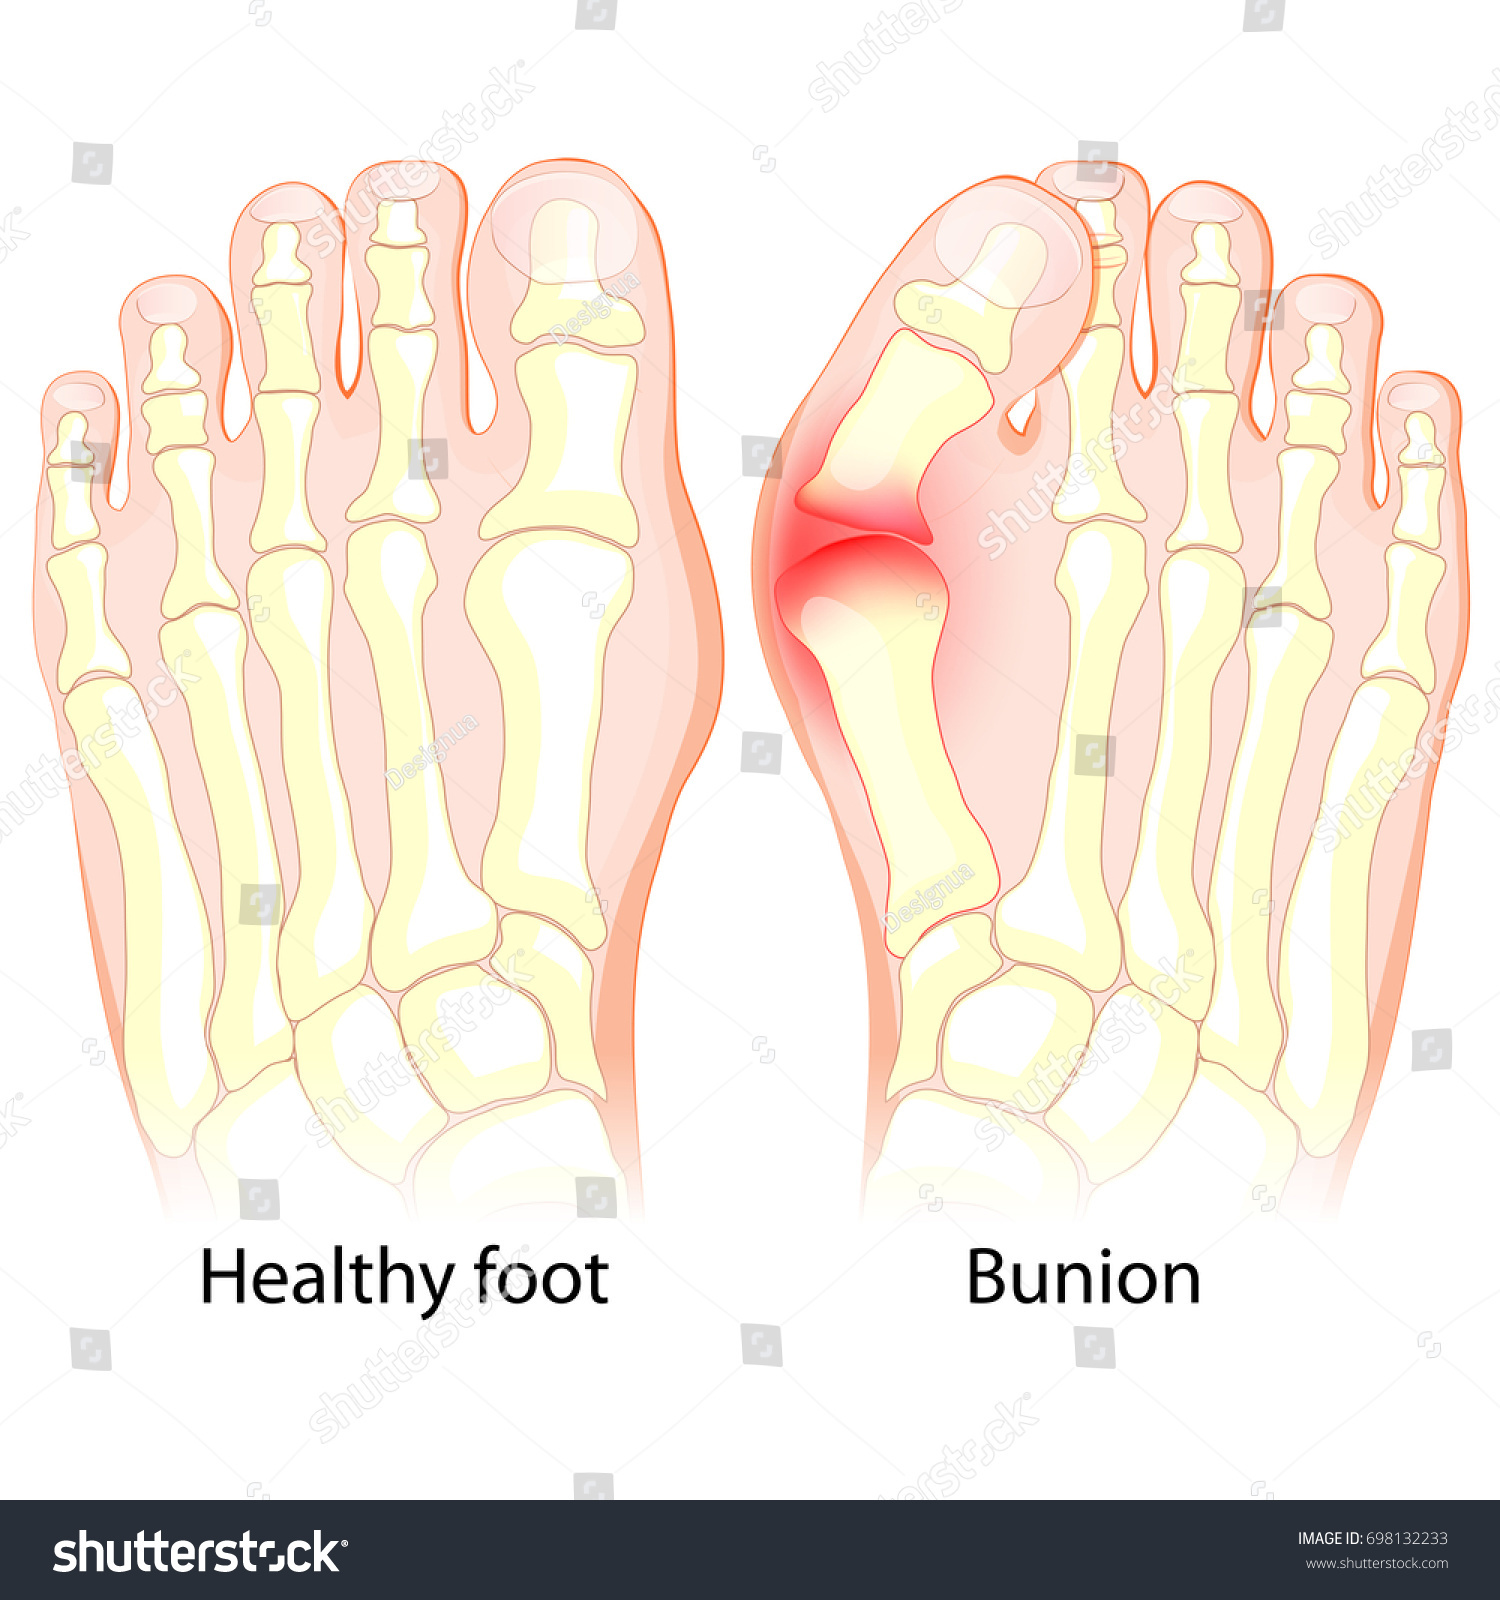 Healthy Foot Foot Bunion Human Anatomy Stock Photo (Photo, Vector ...